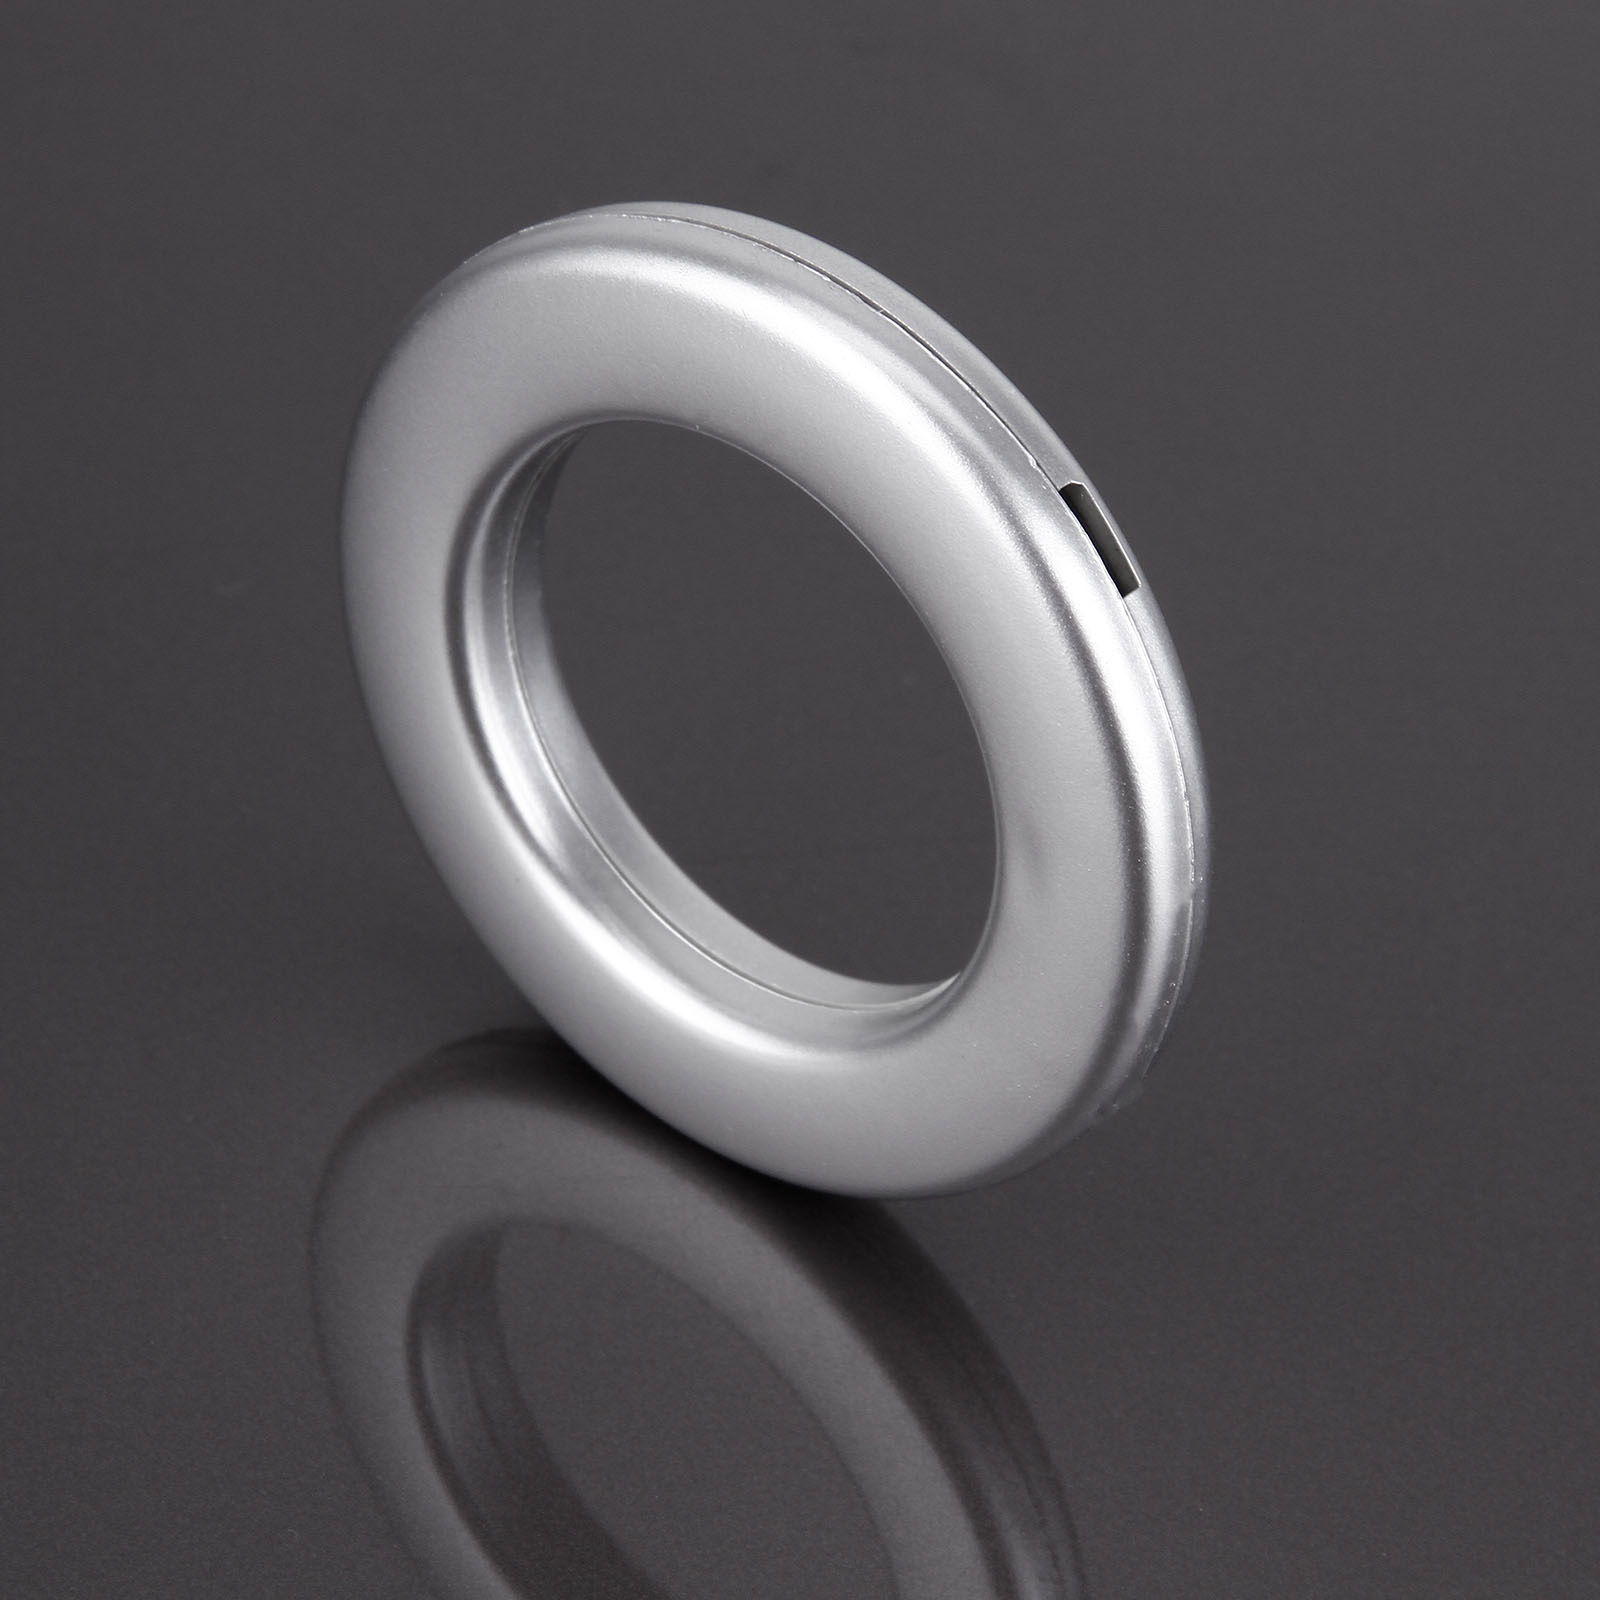 20 X Round Plastic Ring For Eyelet Curtain Rod Decor 35mm